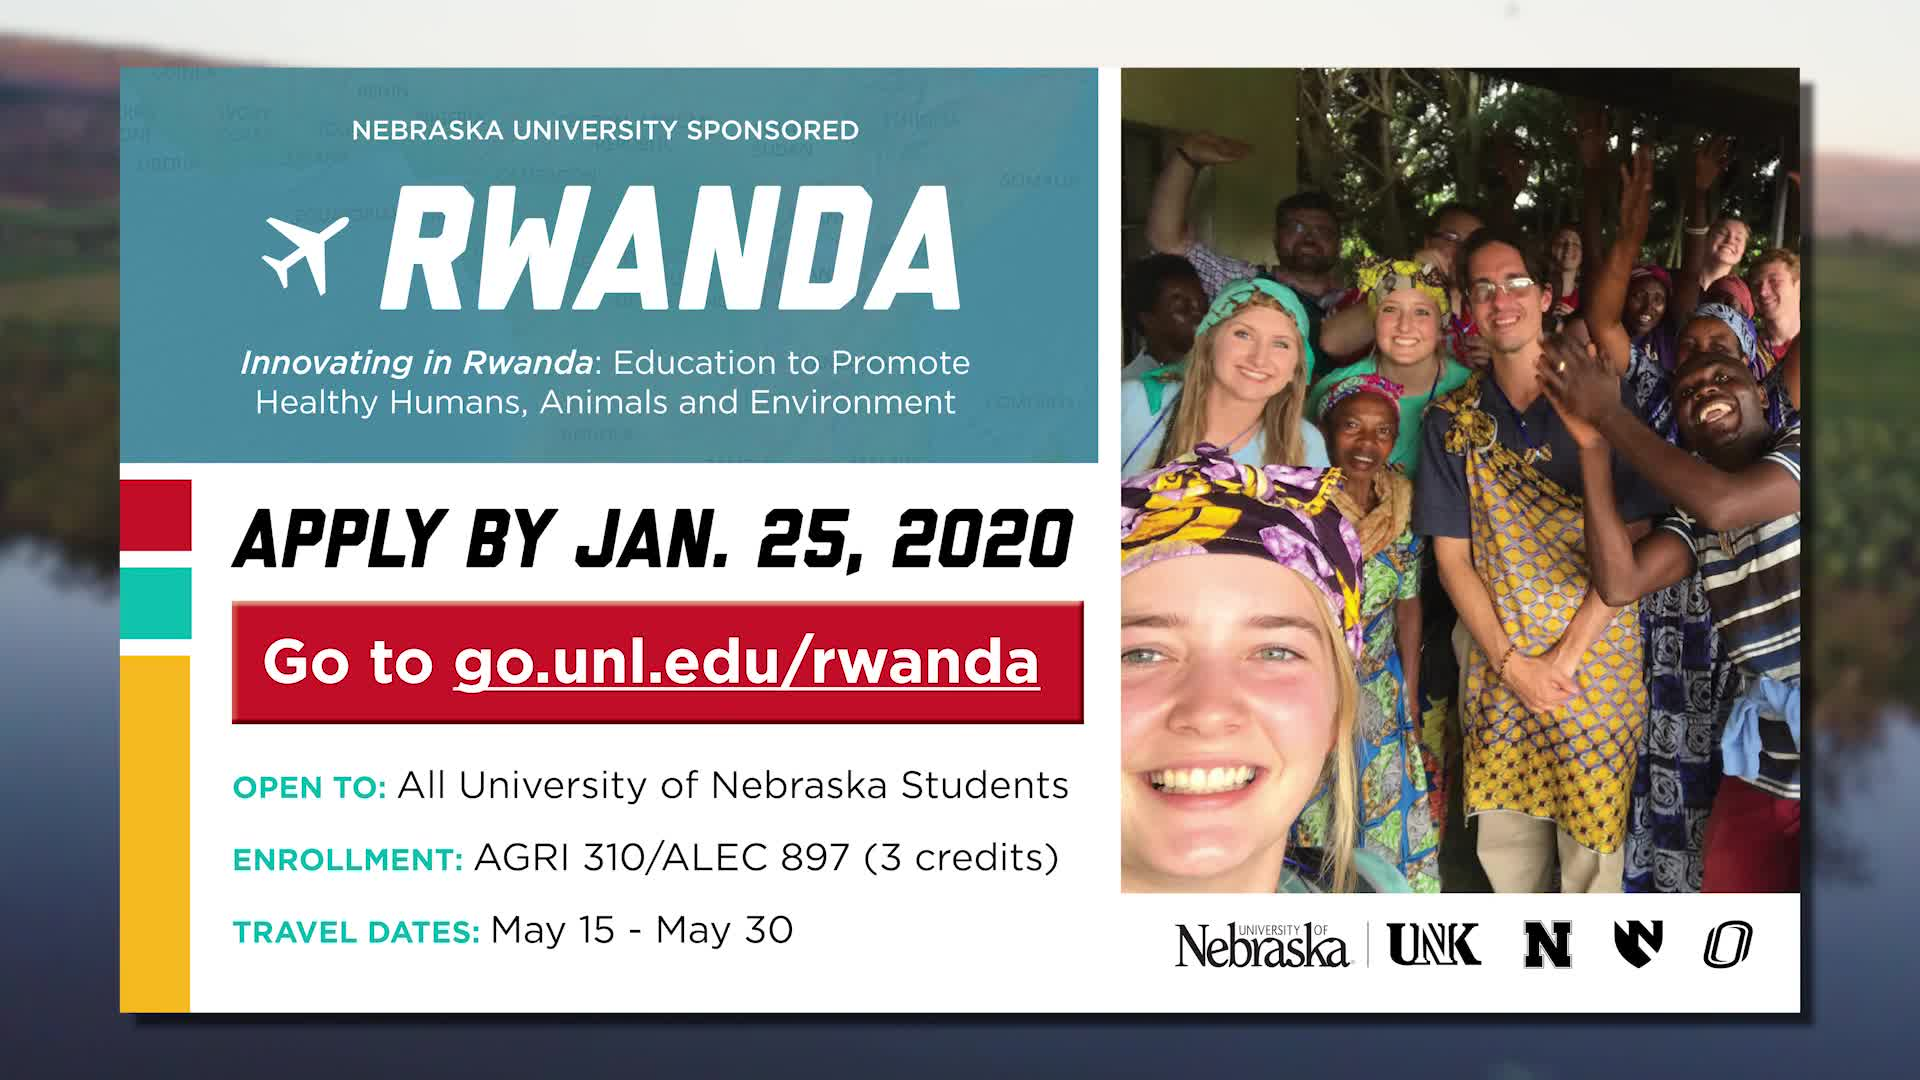 Rwanda 2020: Innovation, Education and the Environment